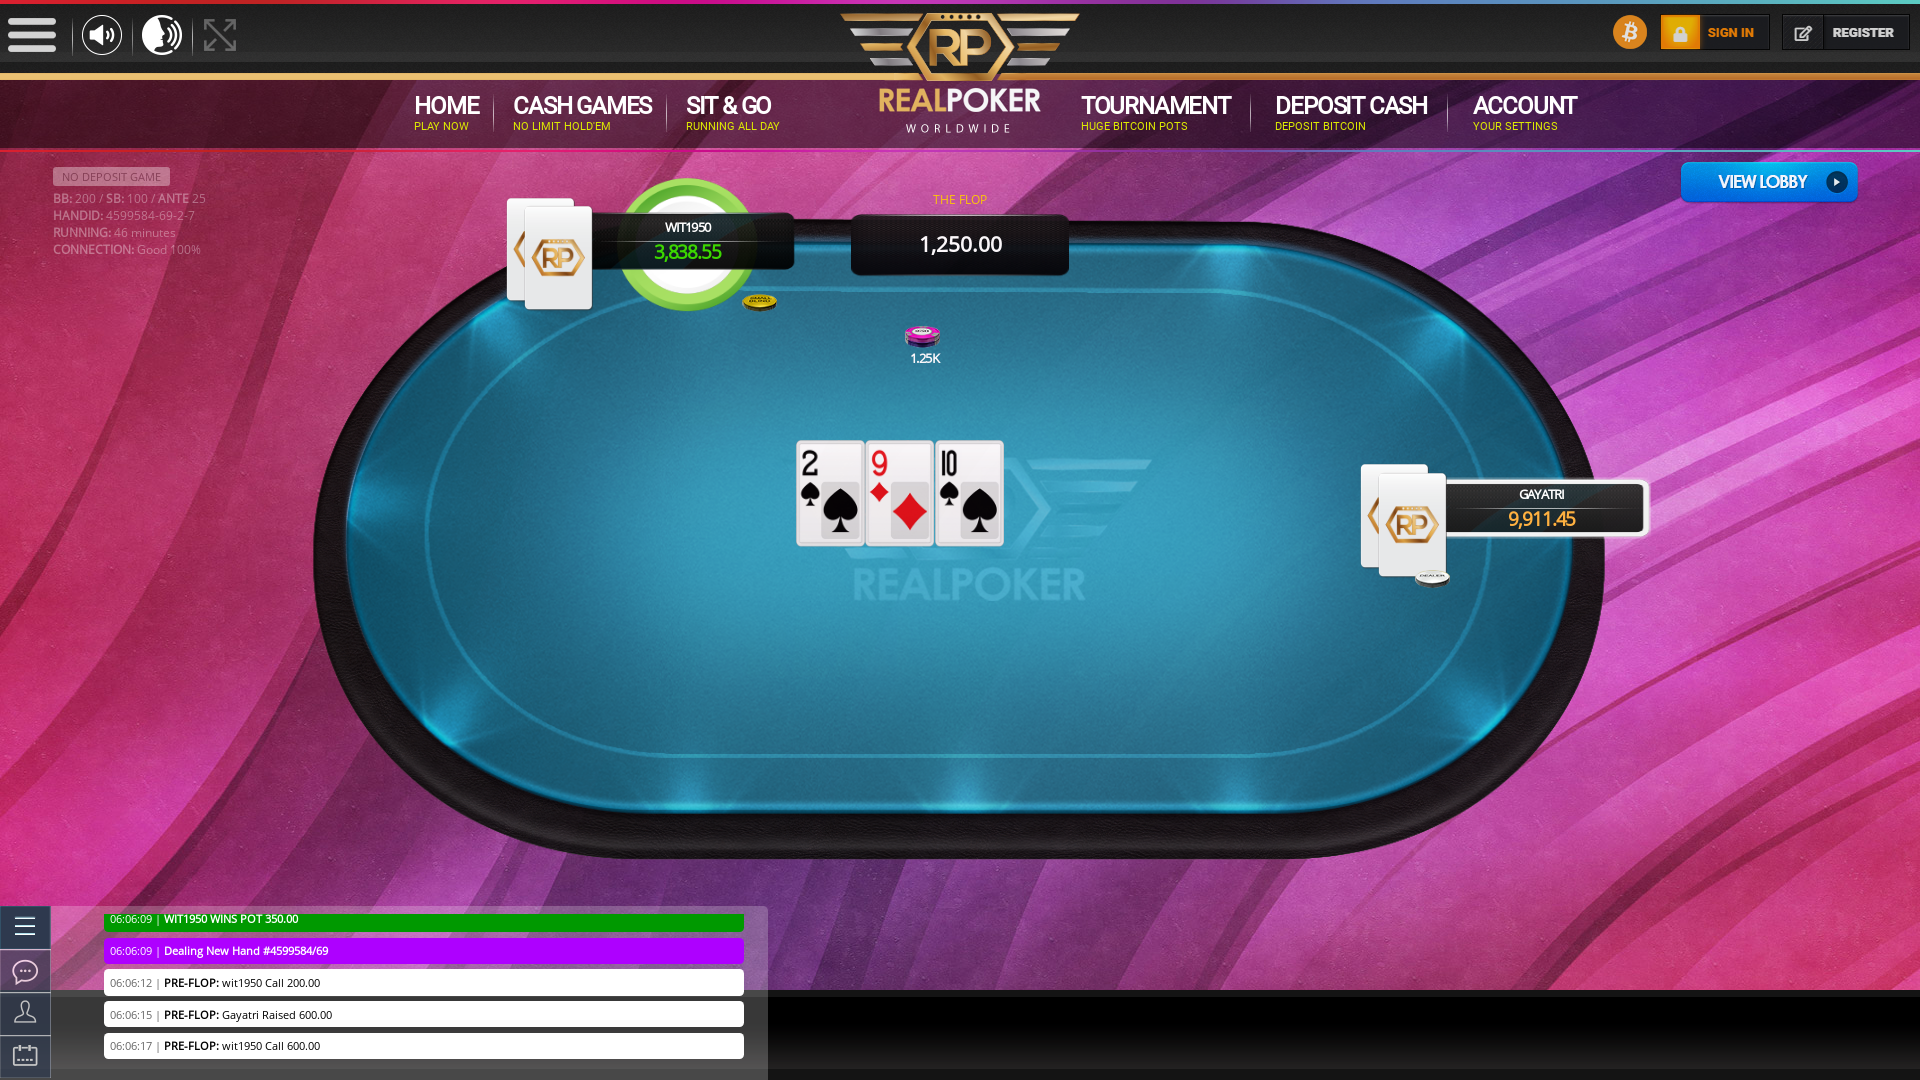 Real poker 10 player table in the 46th minute of the match